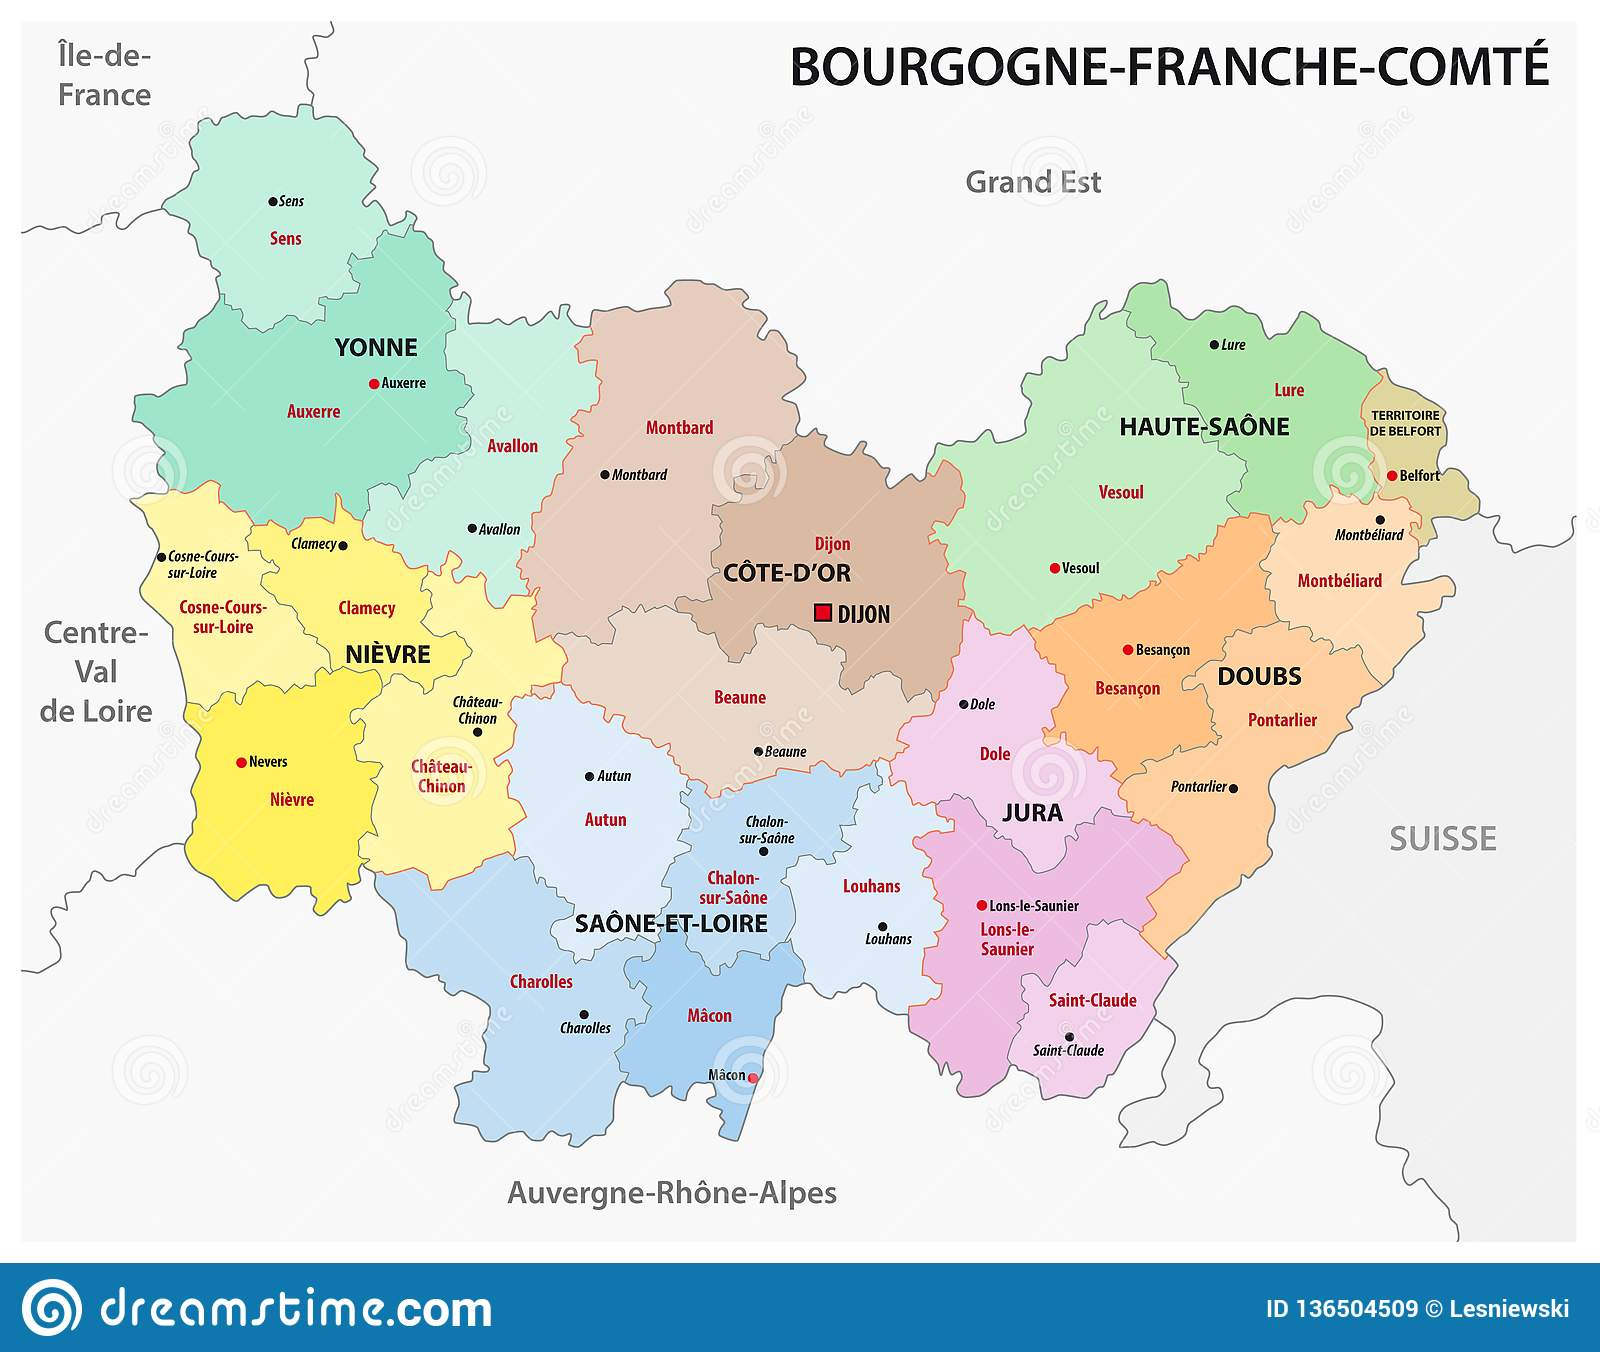 Map Of France New Regions.Administrative Map Of The New French Region Bourgogne Franche Comte